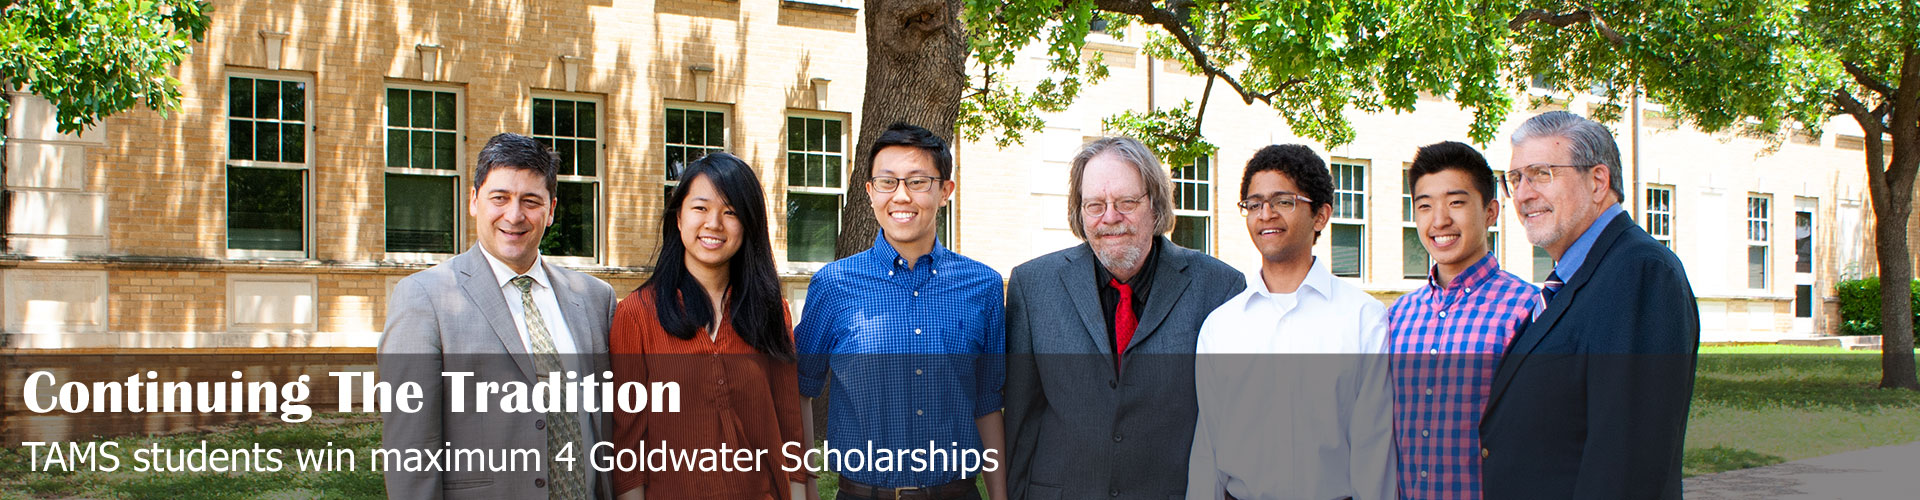 Continuing the tradition: TAMS students win maximum 4 Goldwater Scholarships